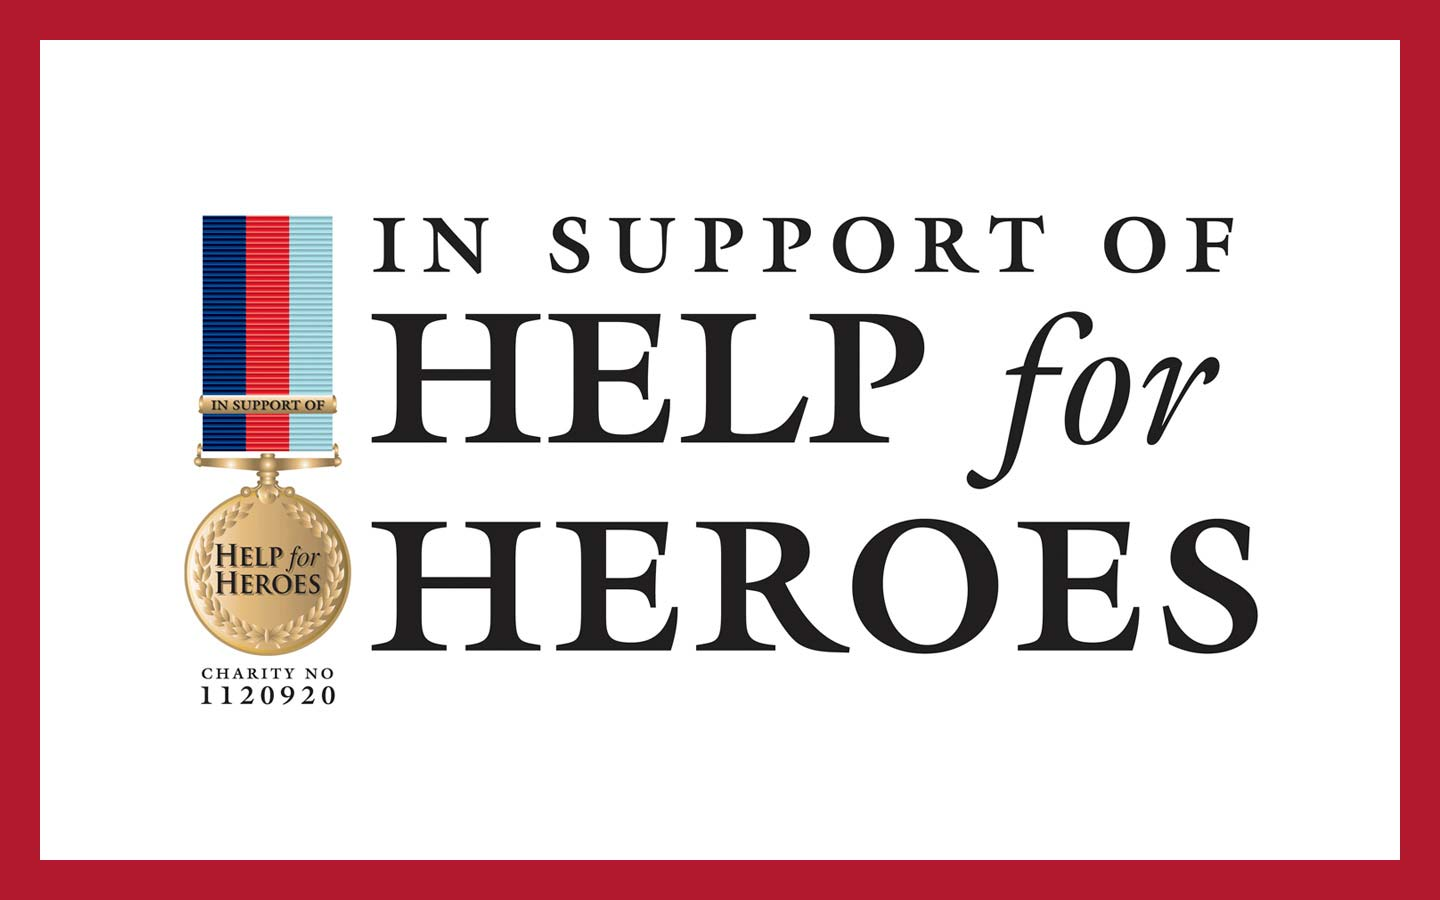 Armed Forces - Help for Heroes